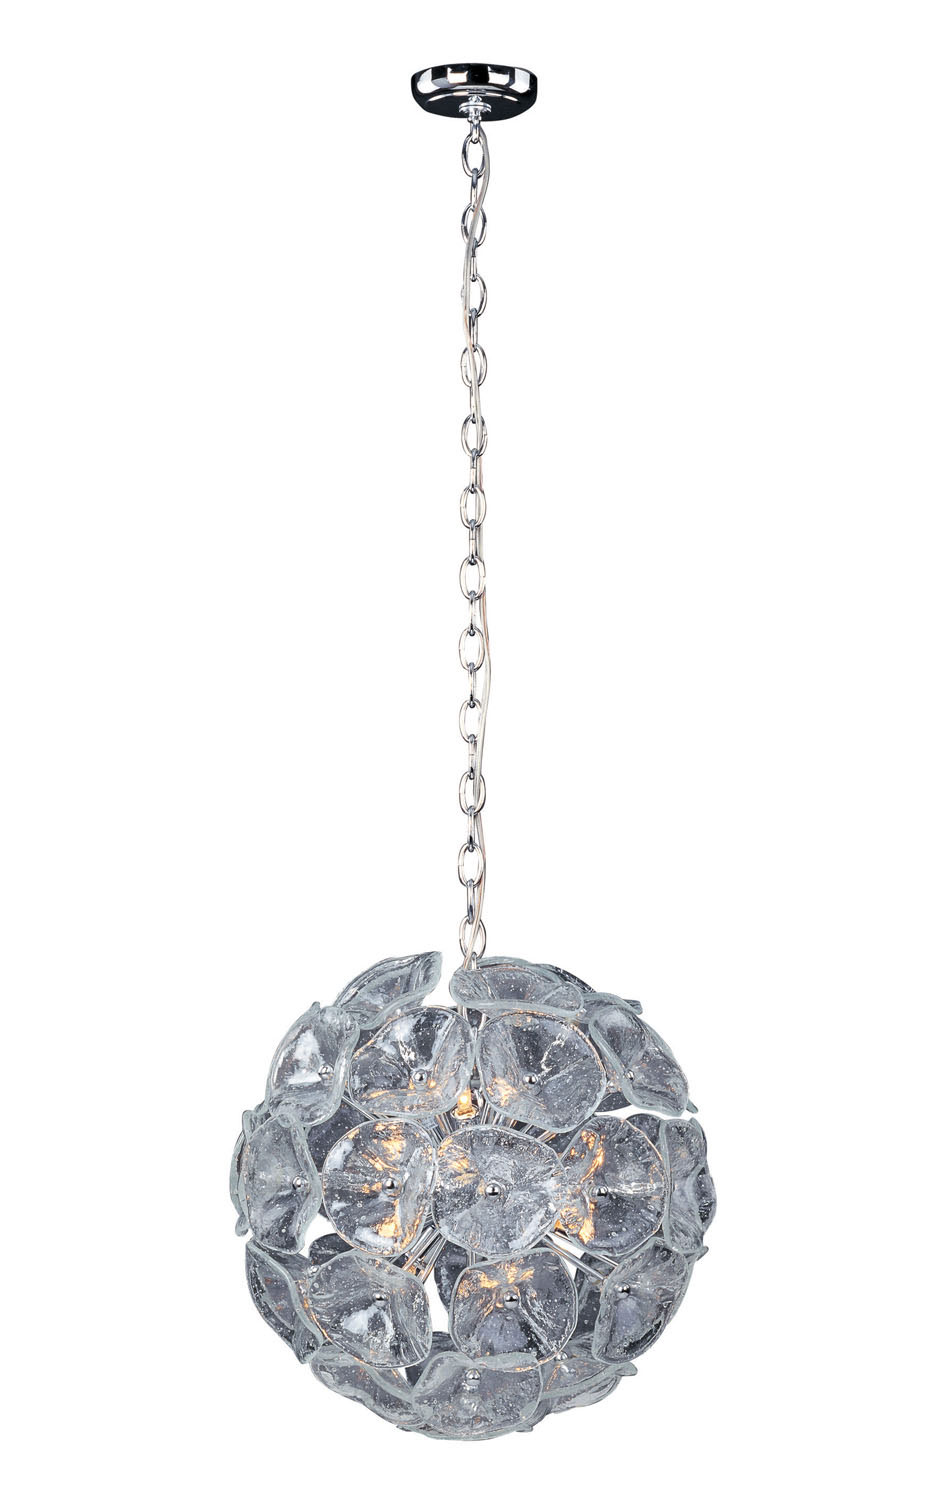 12 Light Pendant from the Fiori collection by ET2 E22093 28